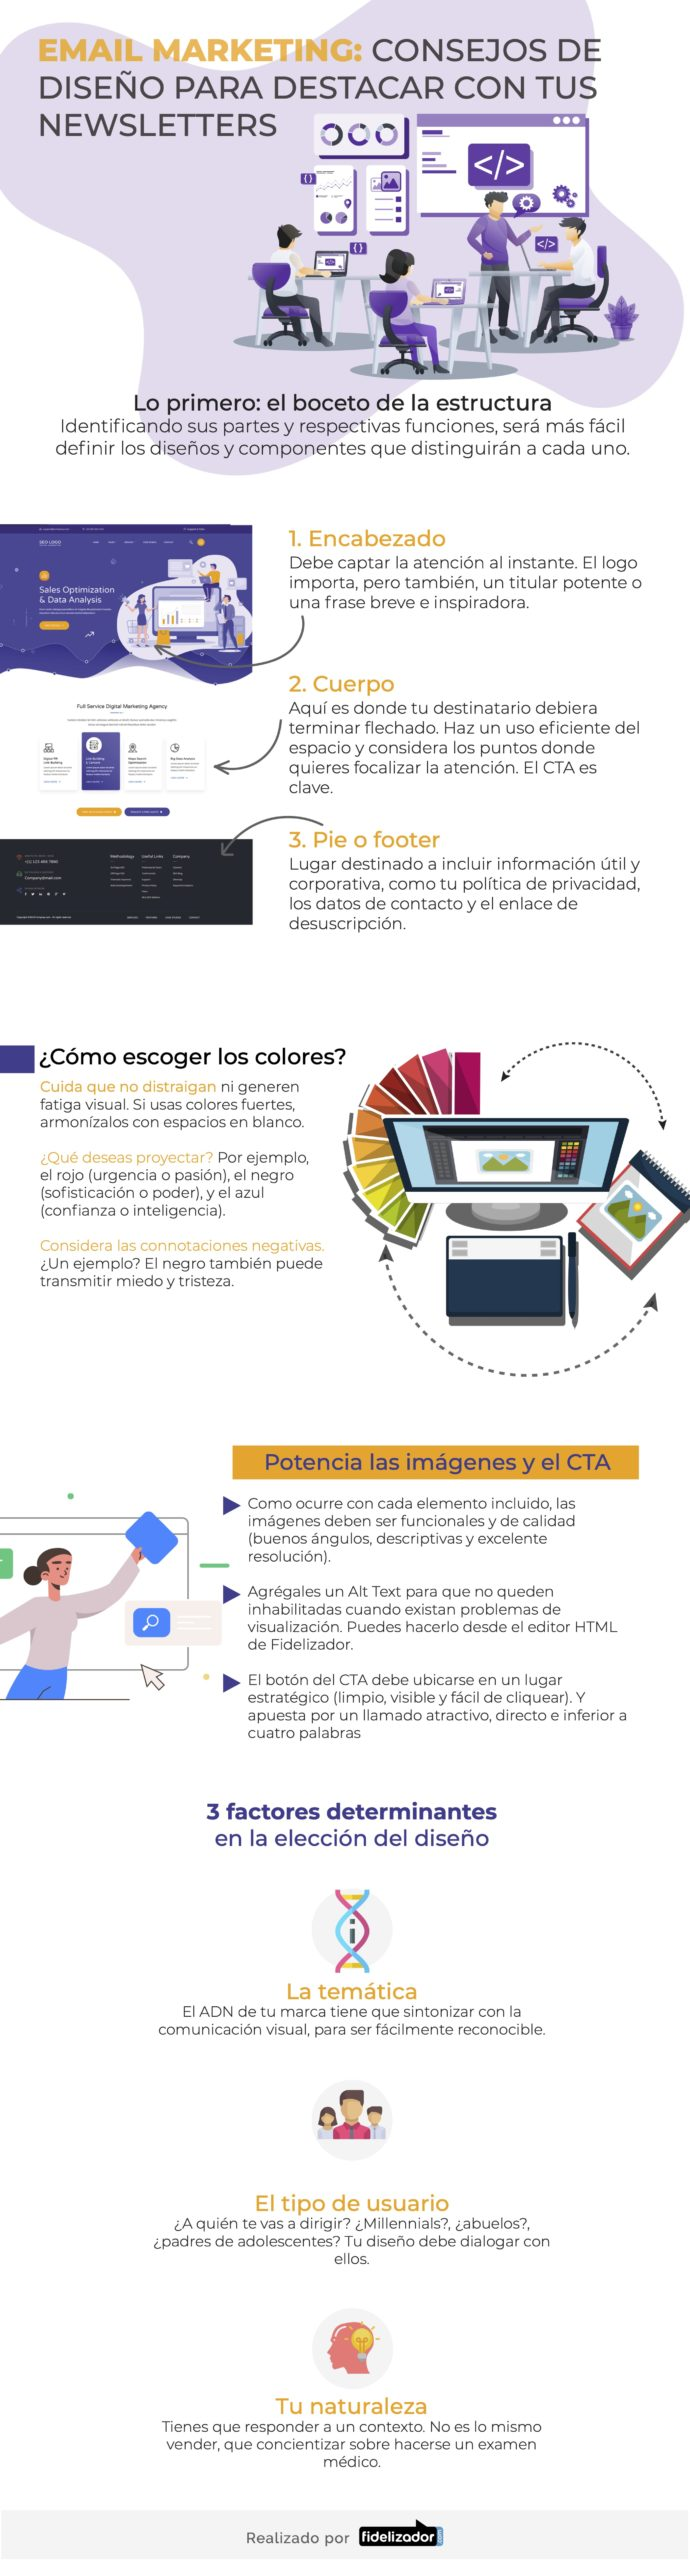 Consejos de diseño para destacar con tu Newsletter #infografia #infographic #marketing